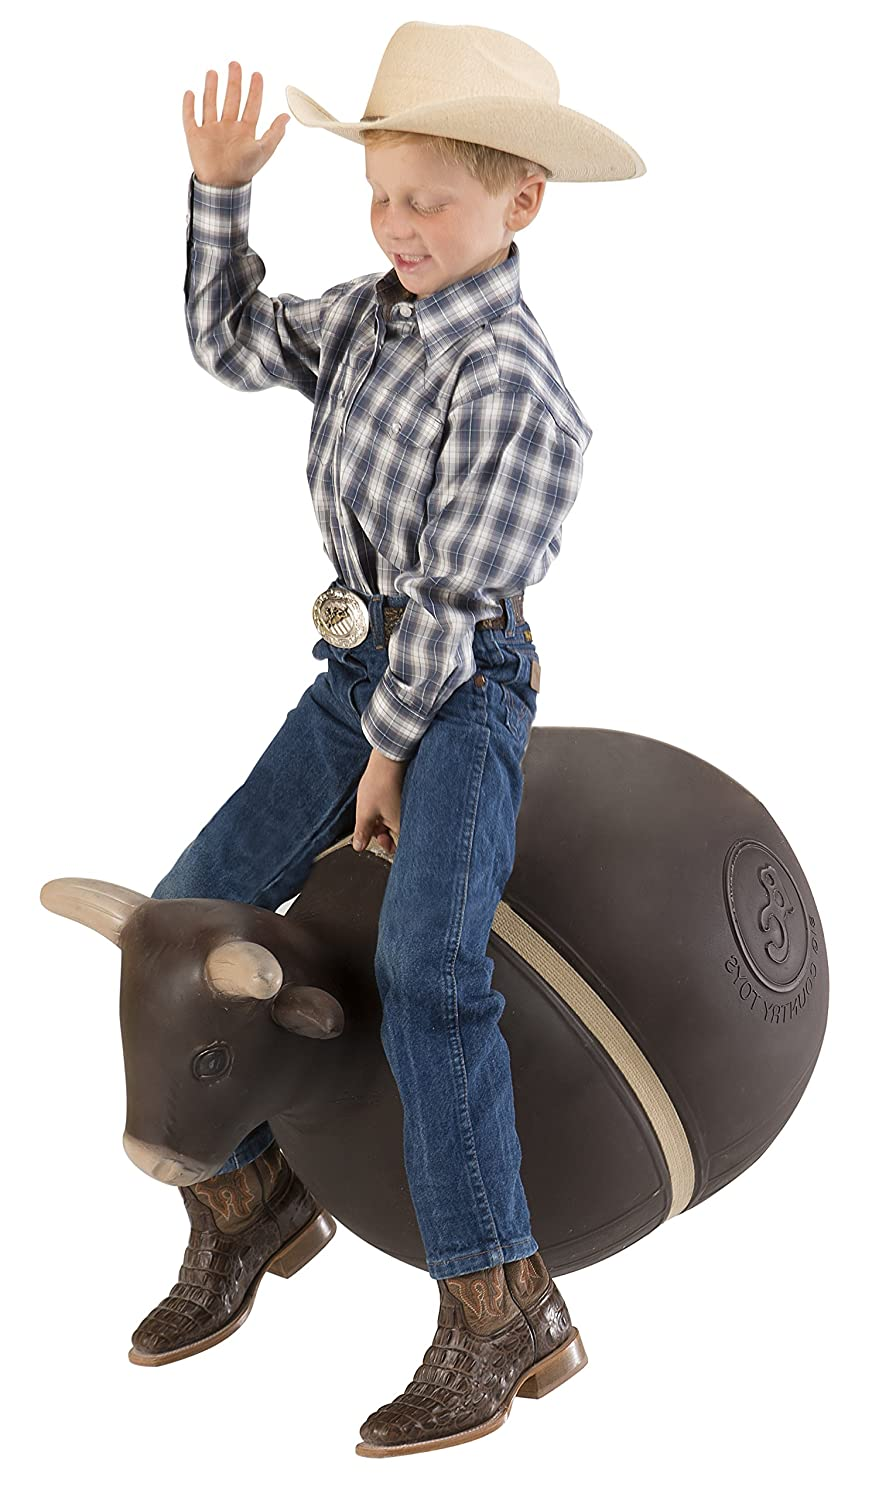 Big Country Toys Bouncy Bull Kids Hopper Toys Bull Riding Rodeo Toys Inflatable Ball with Handle Patented Design